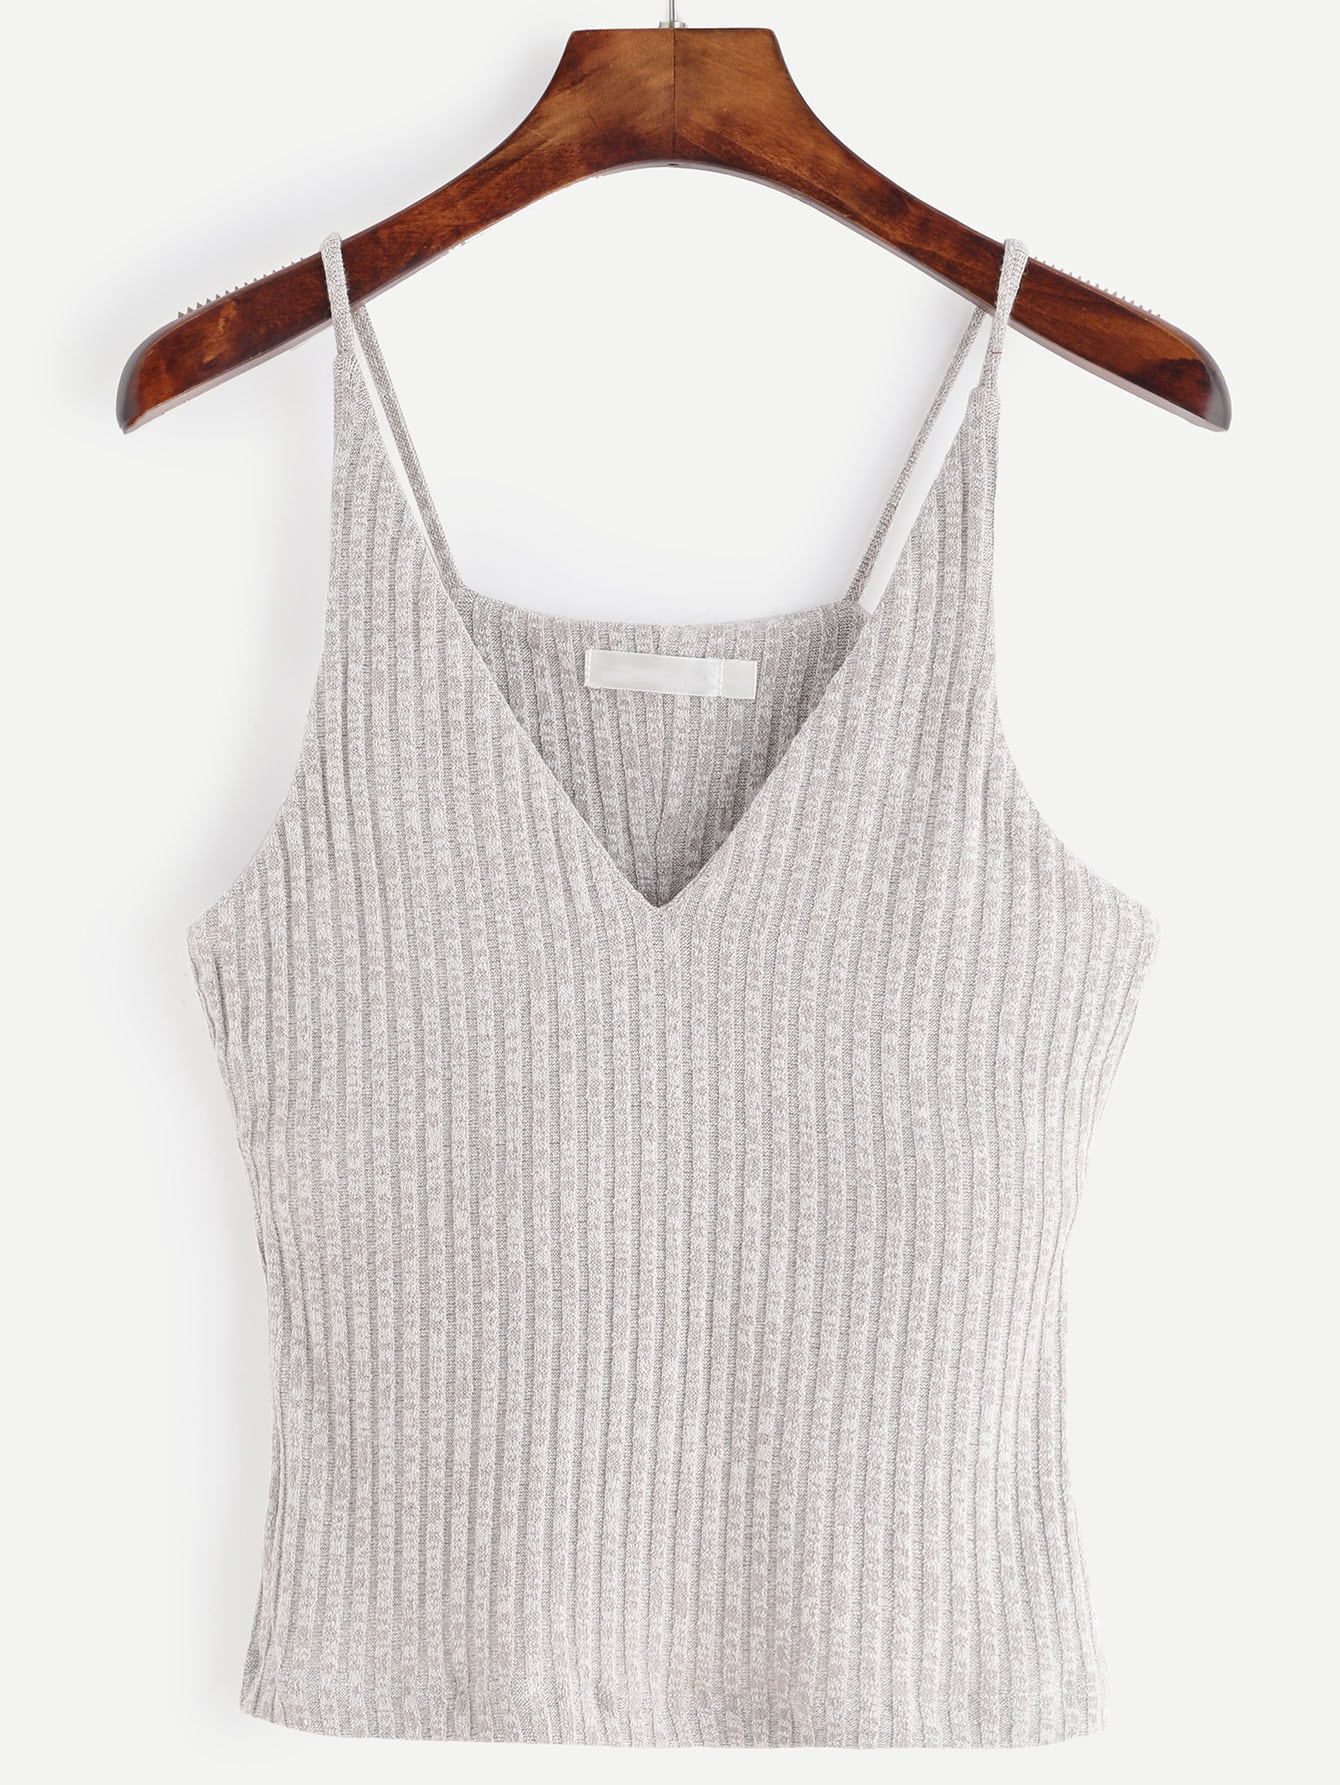 Grey Marled Knit Ribbed Cami Top vest160715007